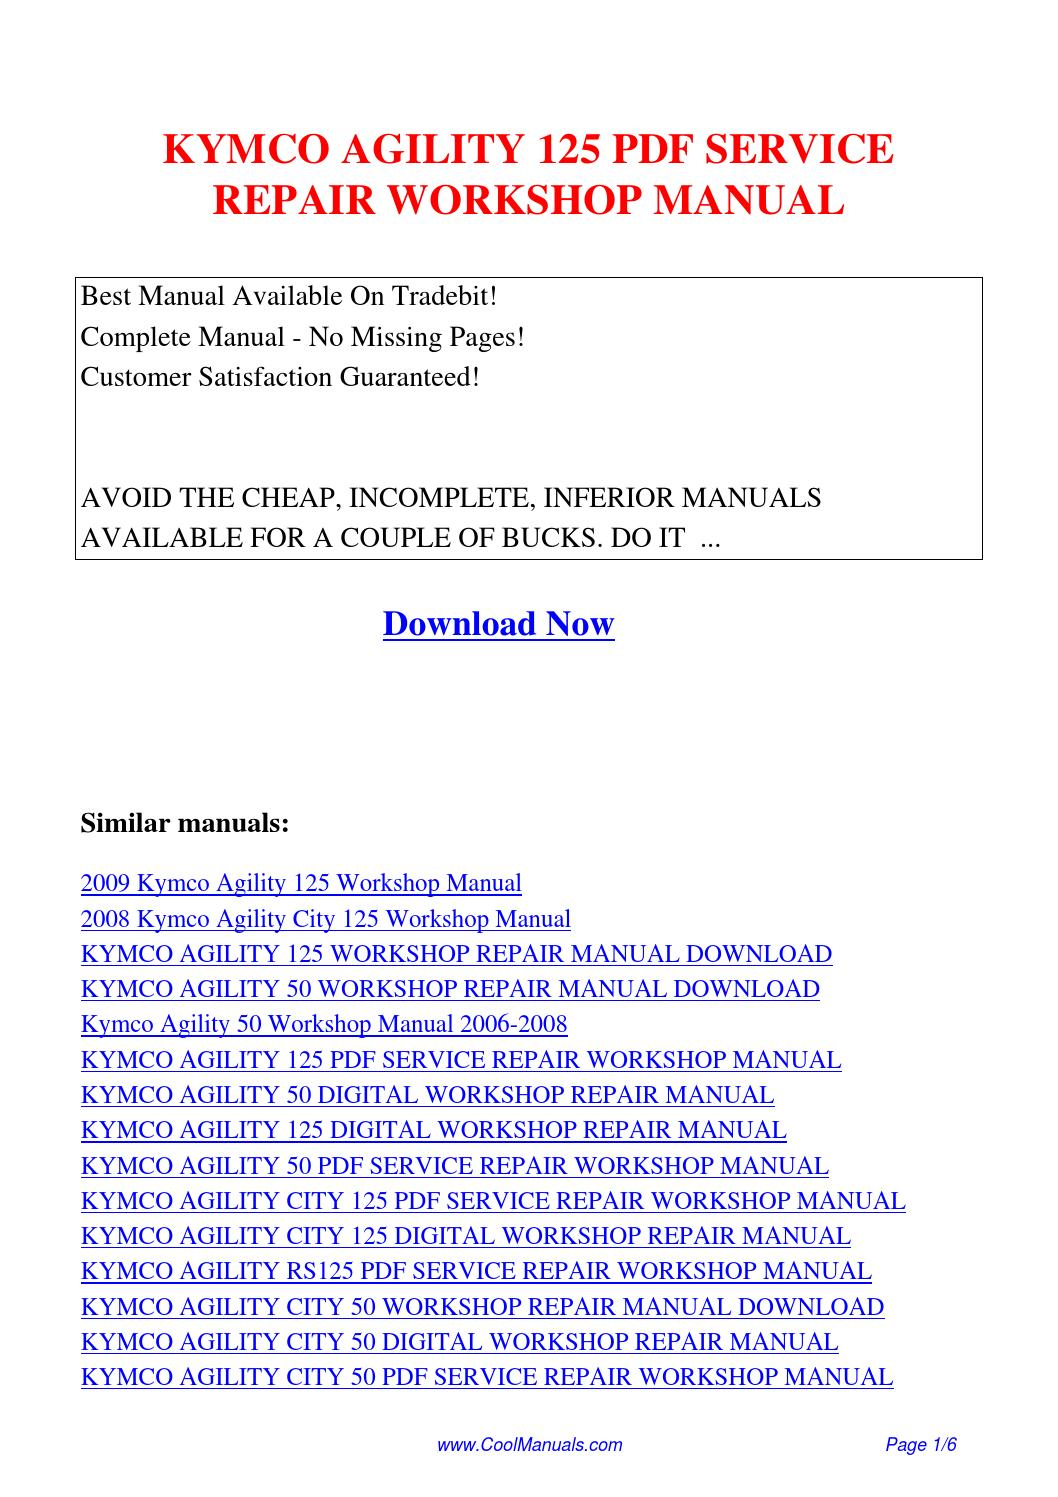 KYMCO AGILITY 125 SERVICE REPAIR WORKSHOP MANUAL.pdf by Guang Hui - issuu